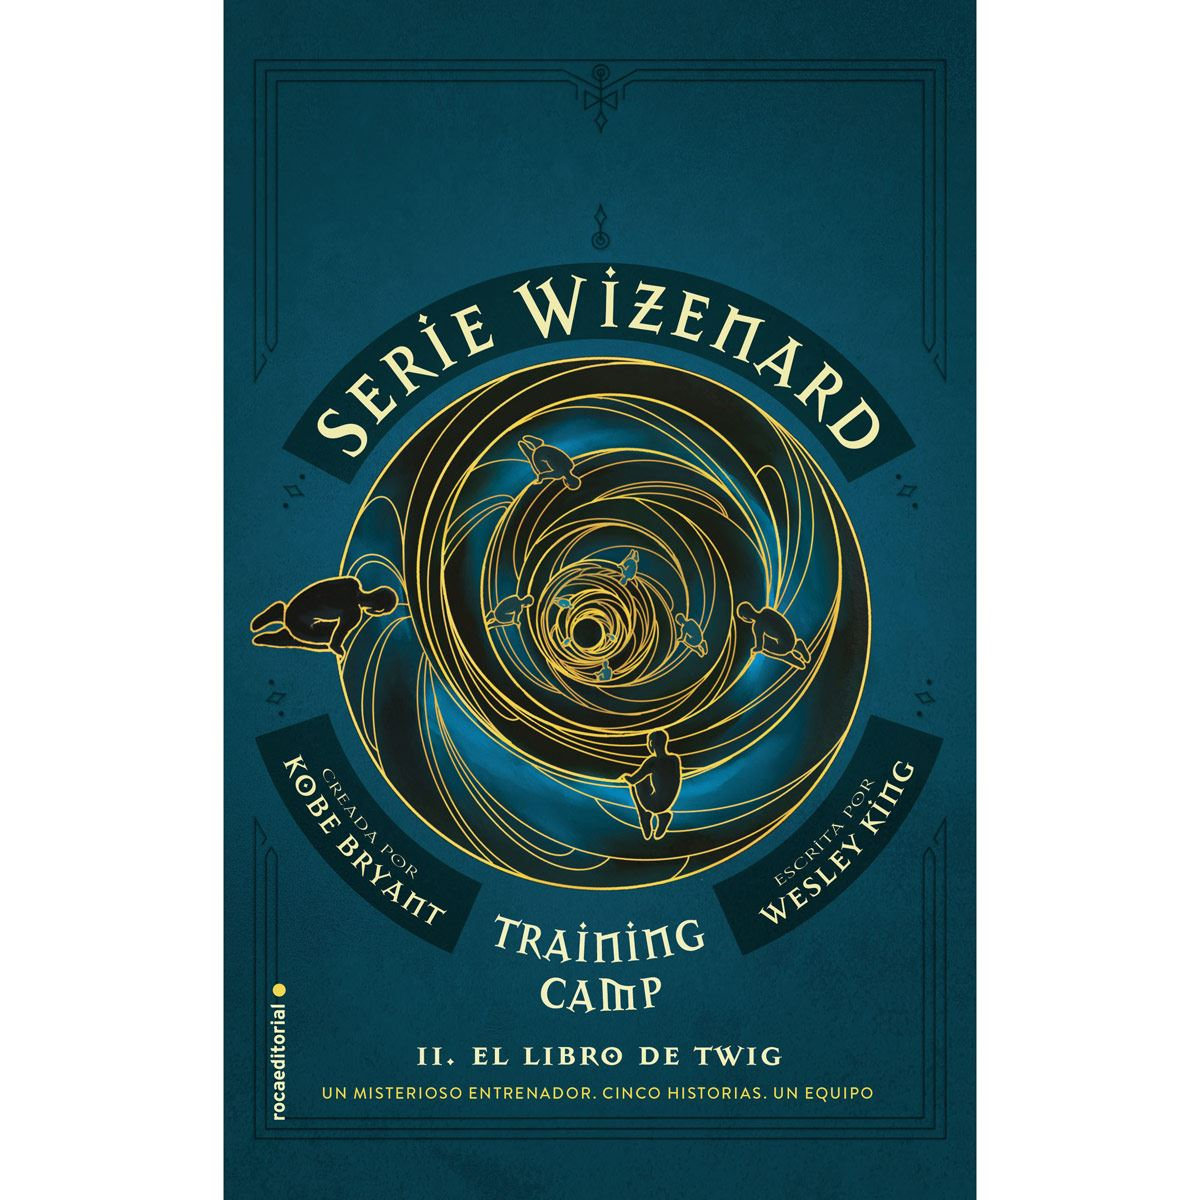 Training camp. El libro de Twig (wizenard)